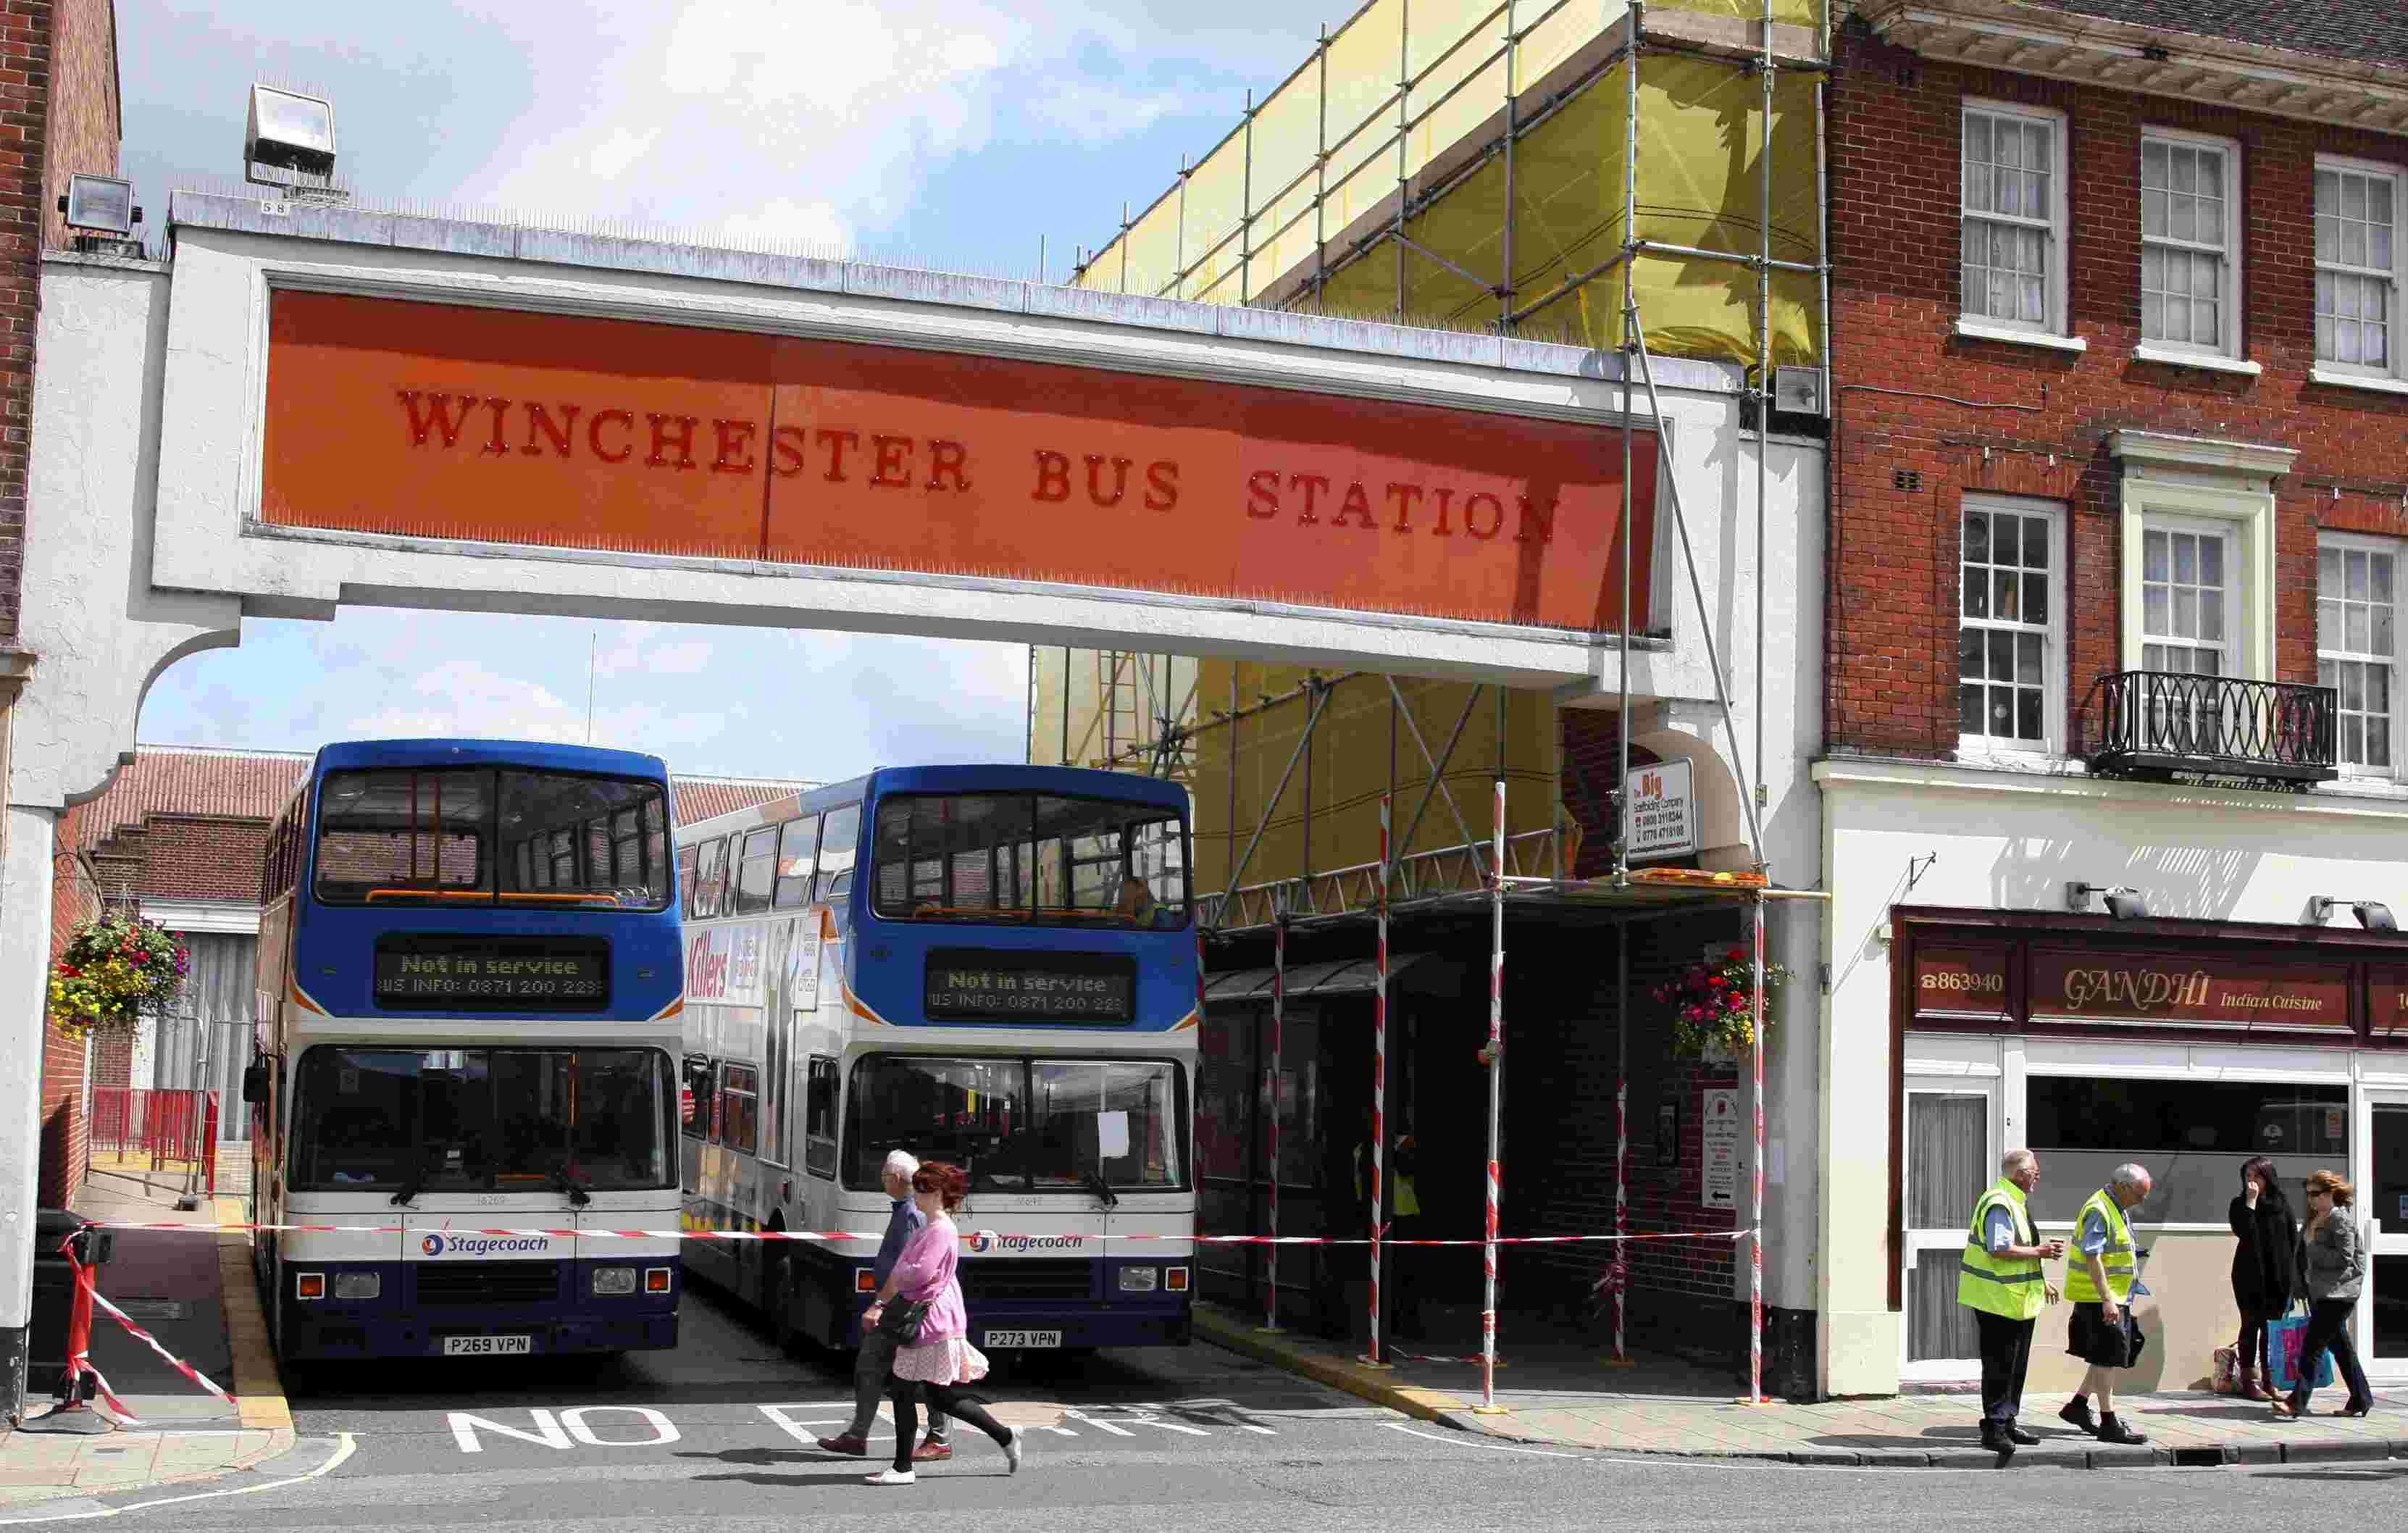 County council criticised over bus consultation